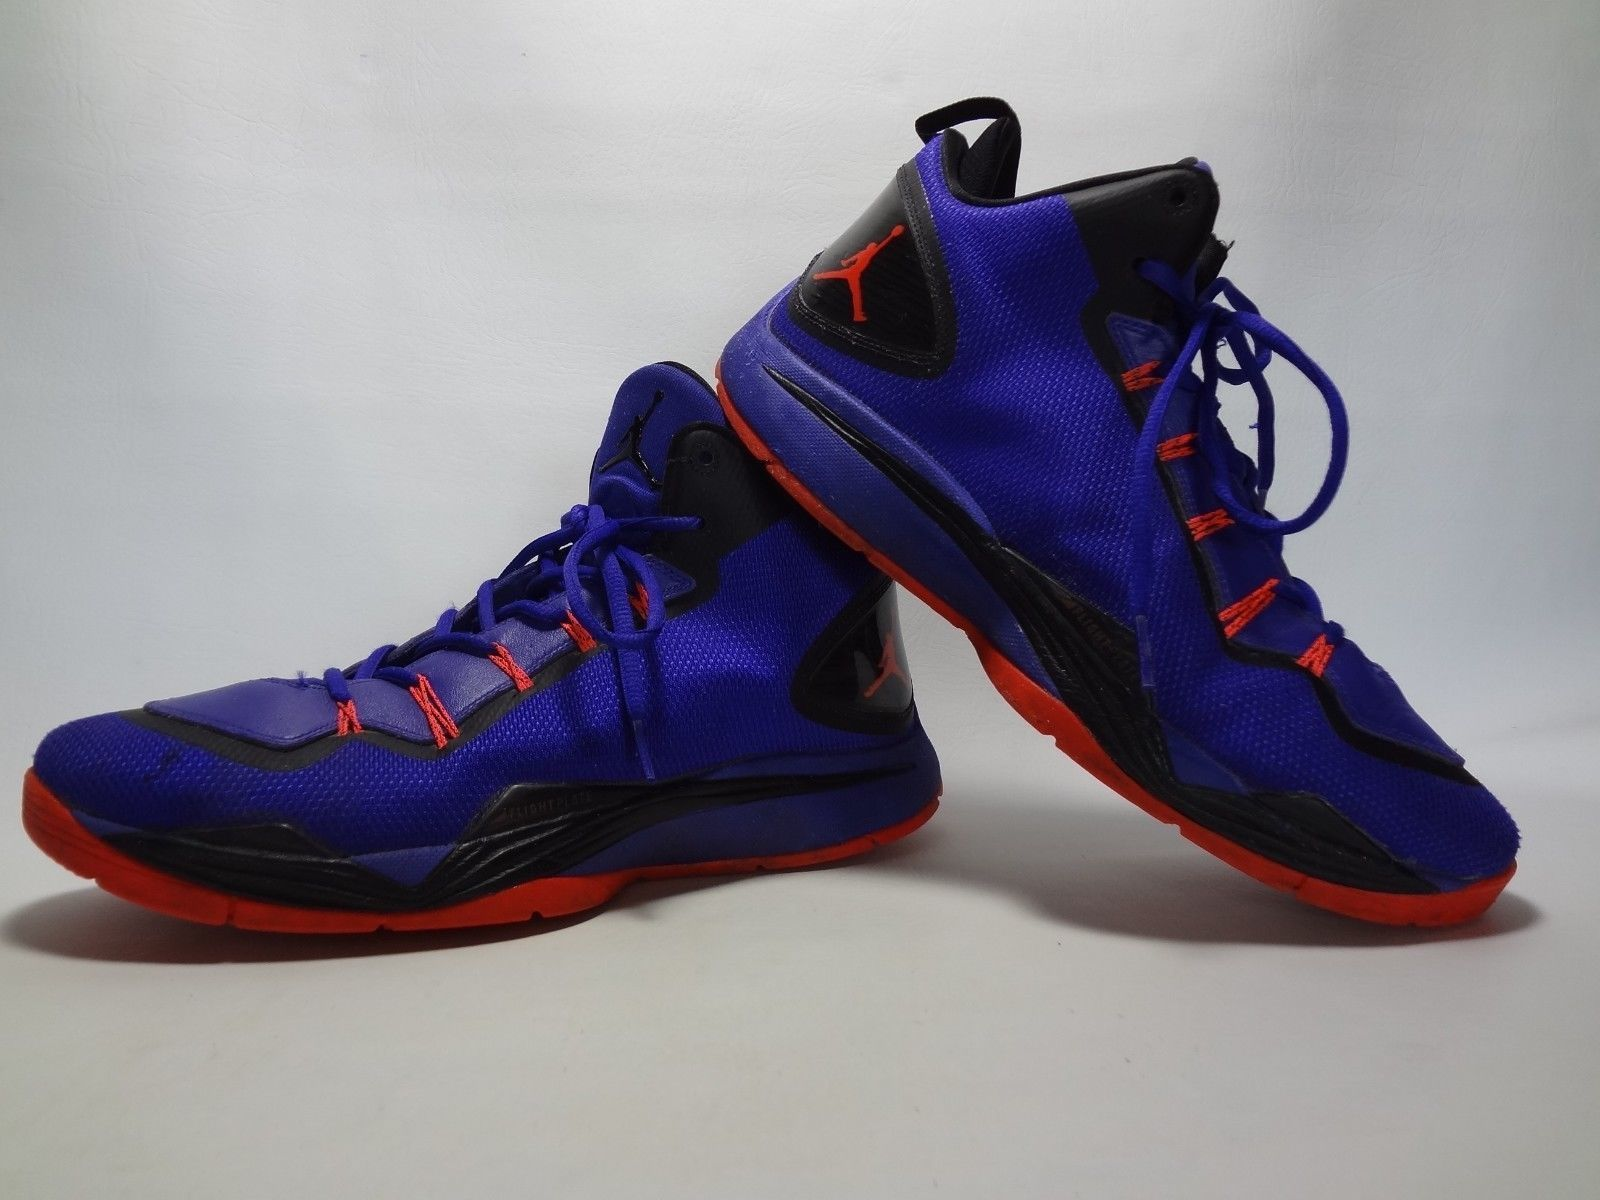 uk availability a92c2 dcc46 Nike Air Jordan Super Fly 2 PO Playoffs and 50 similar items. 57